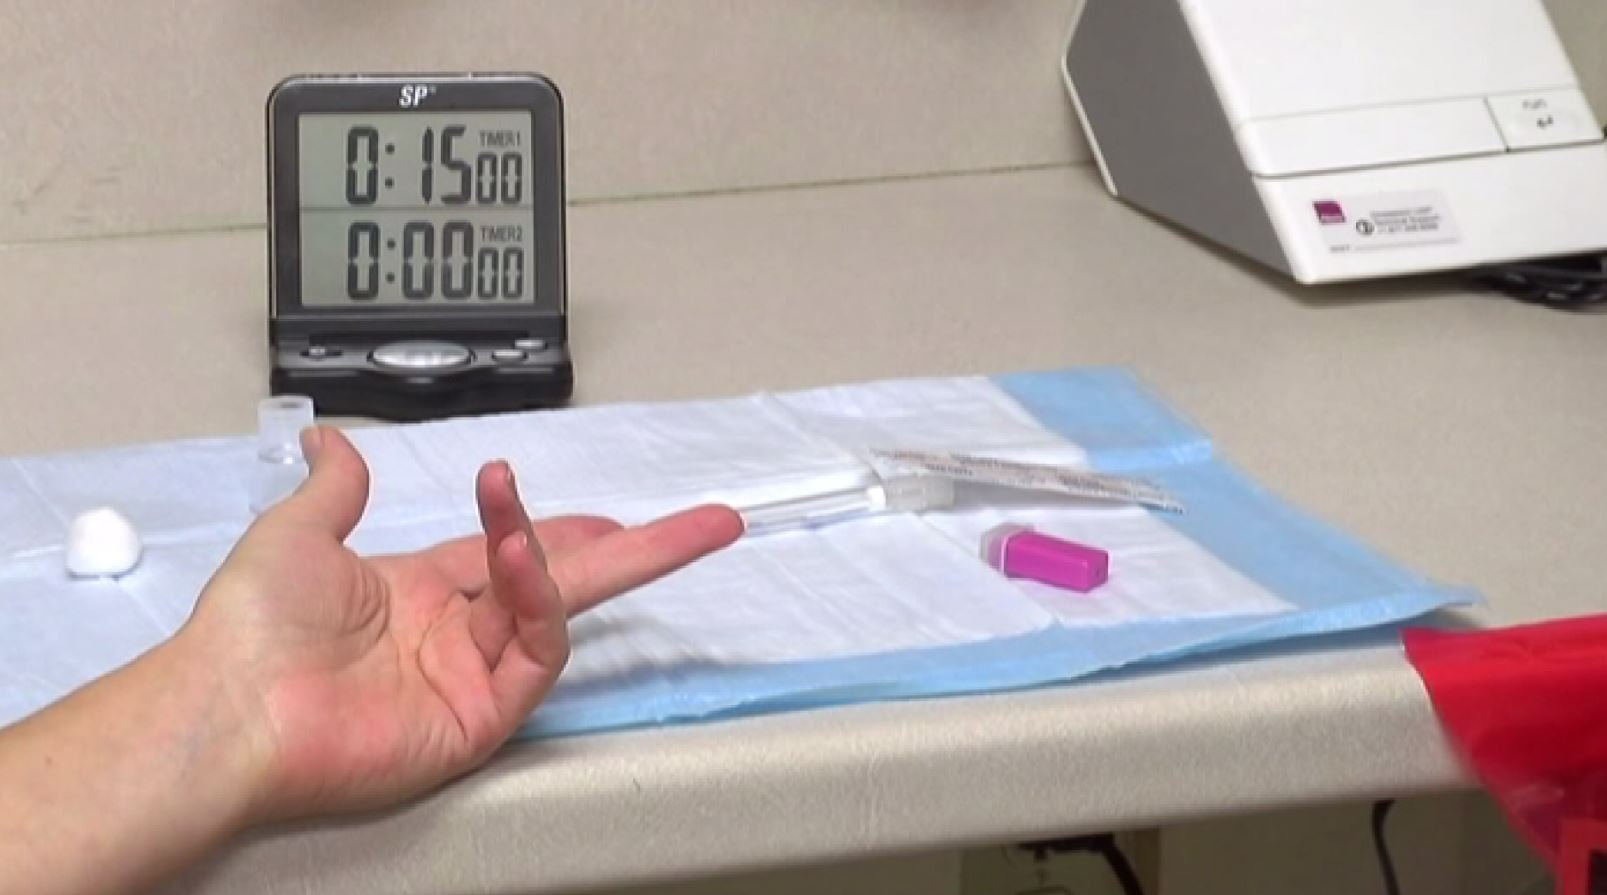 Abilene health clinic offering free HIV tests on Tuesday